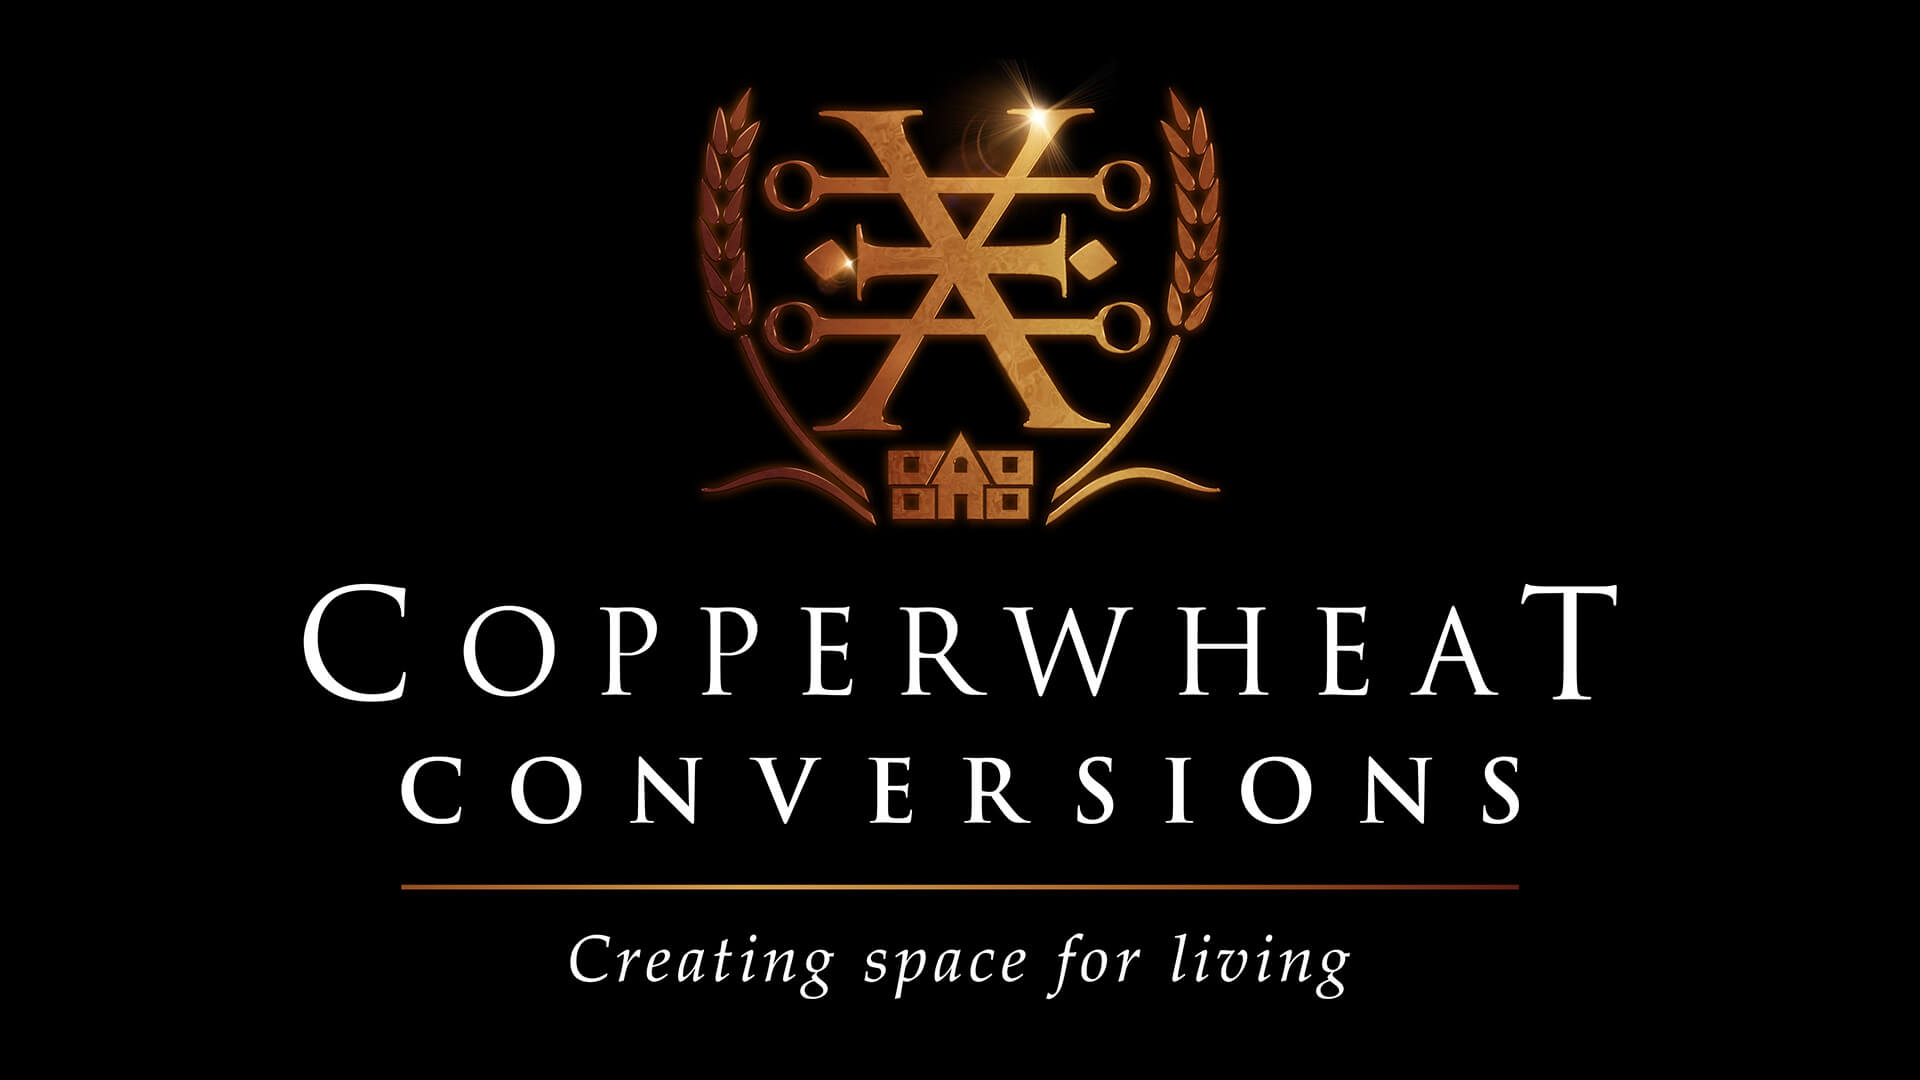 copperwheat conversions 3